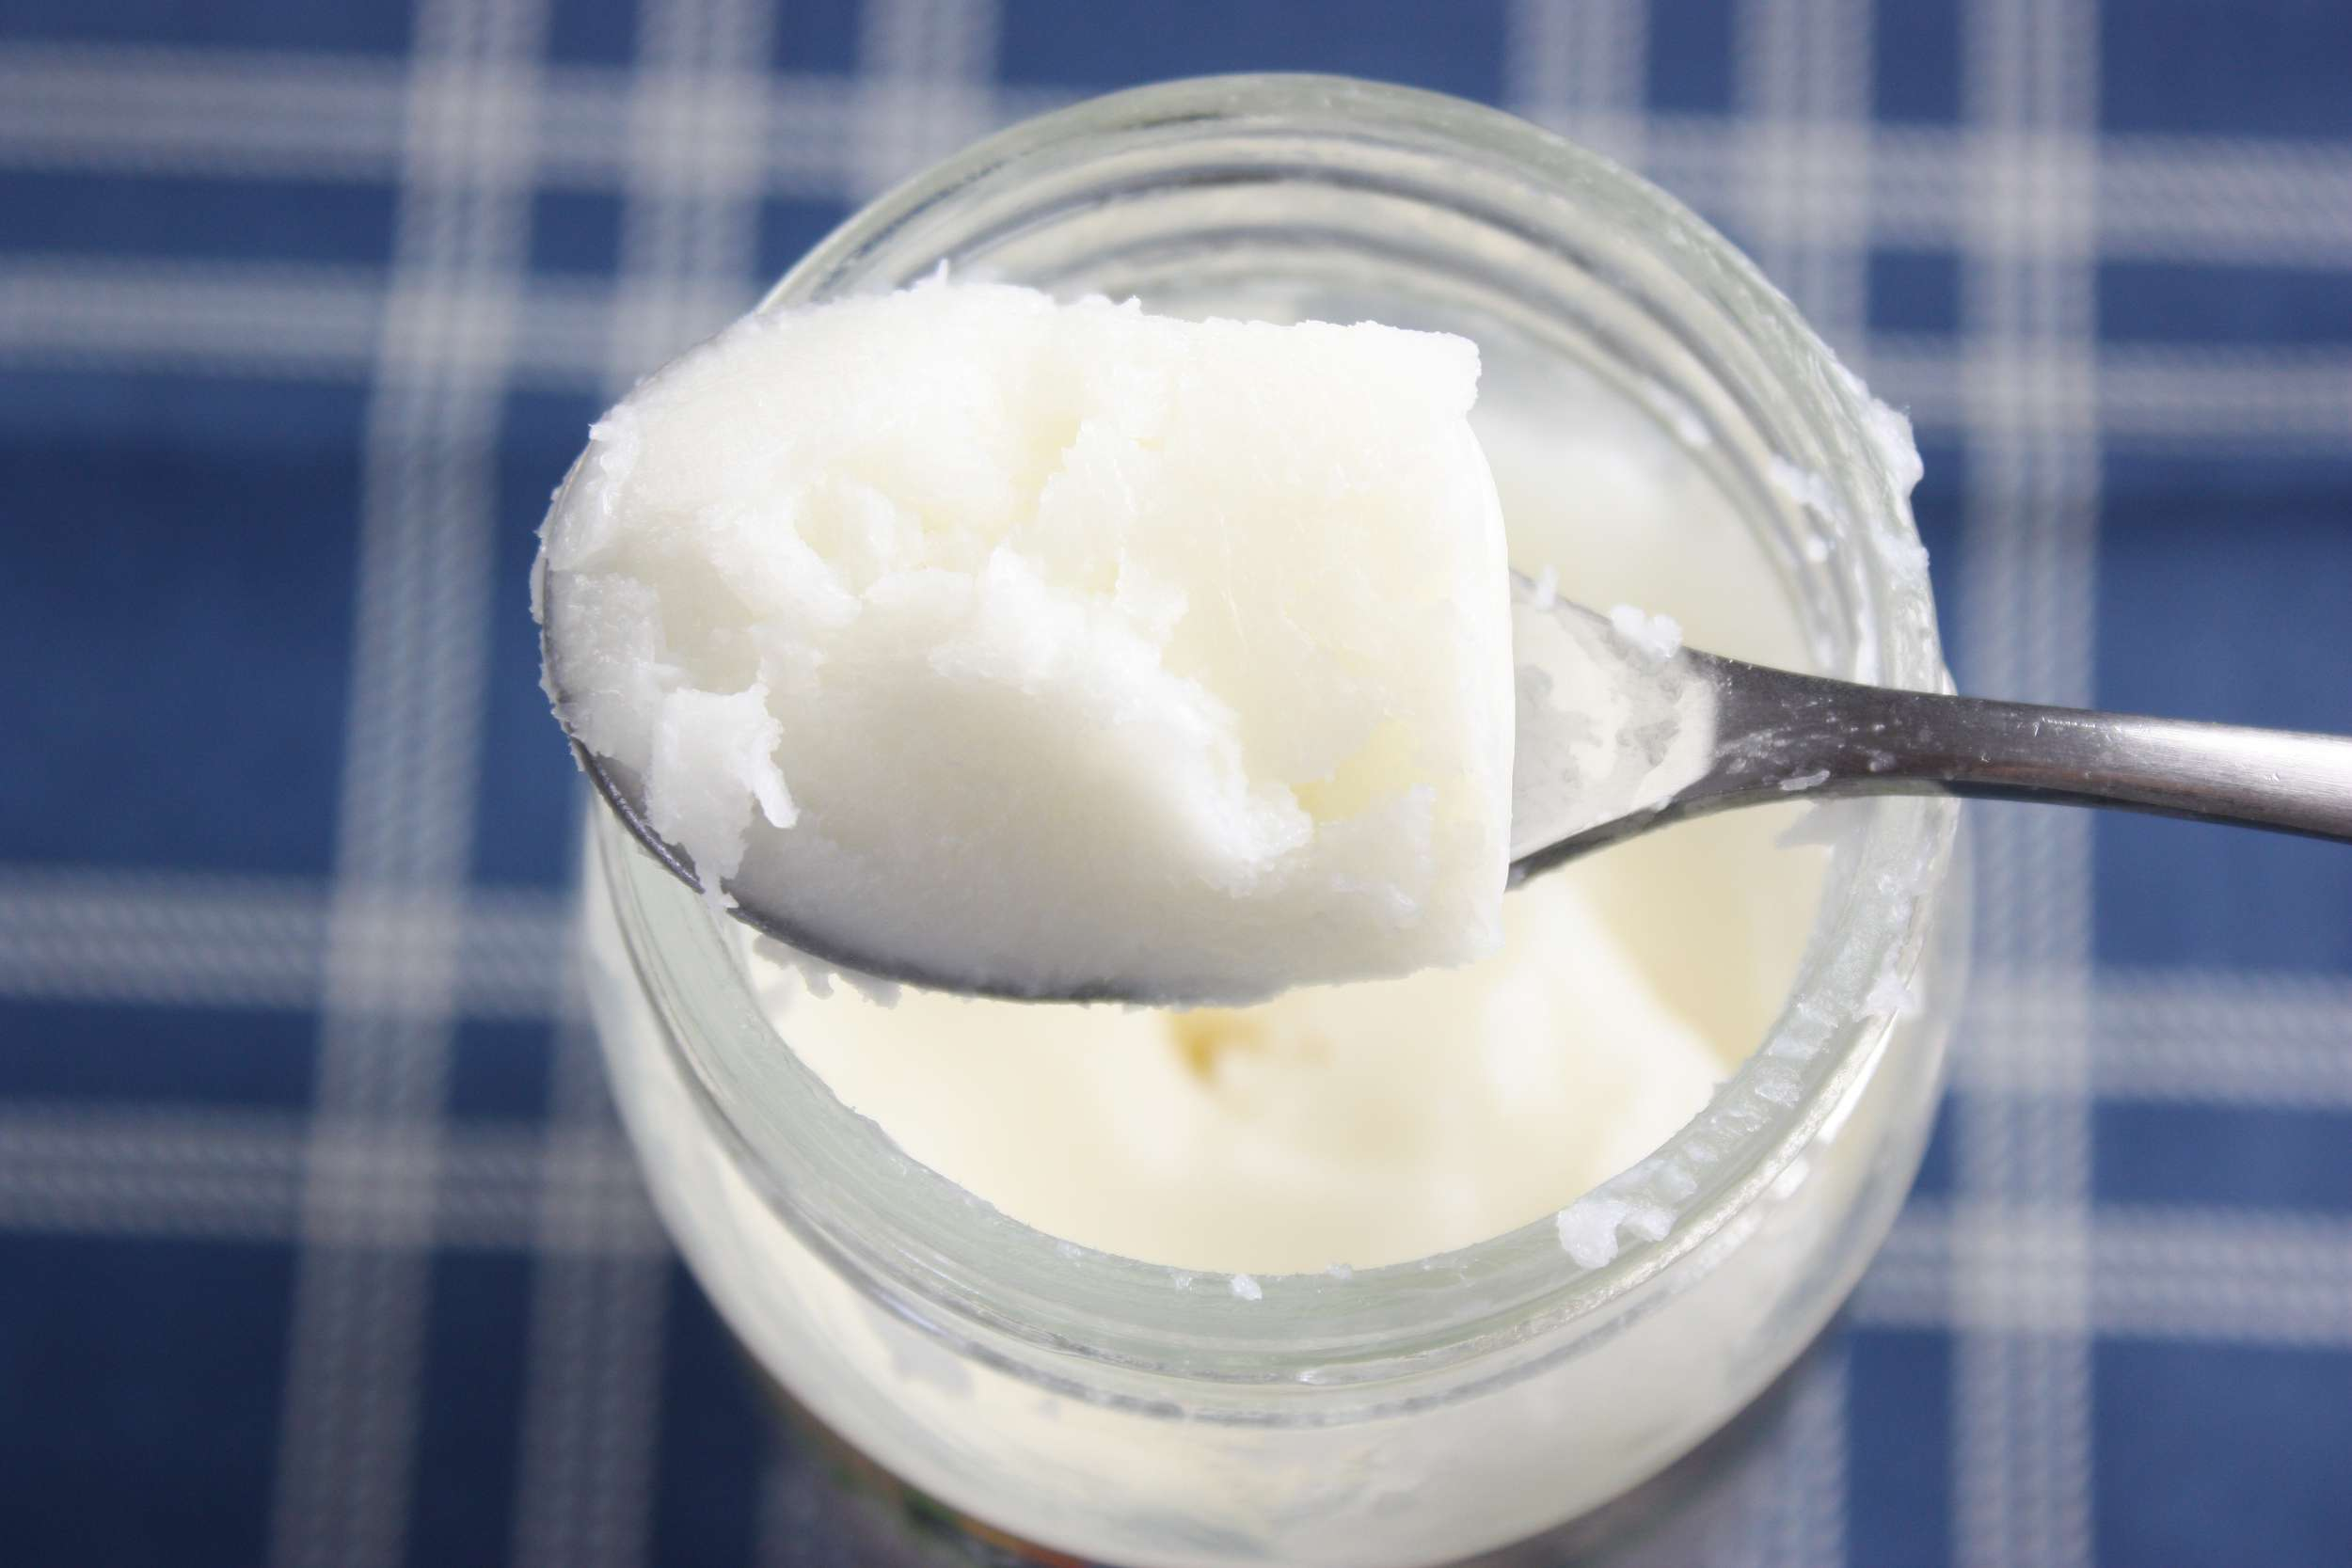 Coconut Oil on a spoon